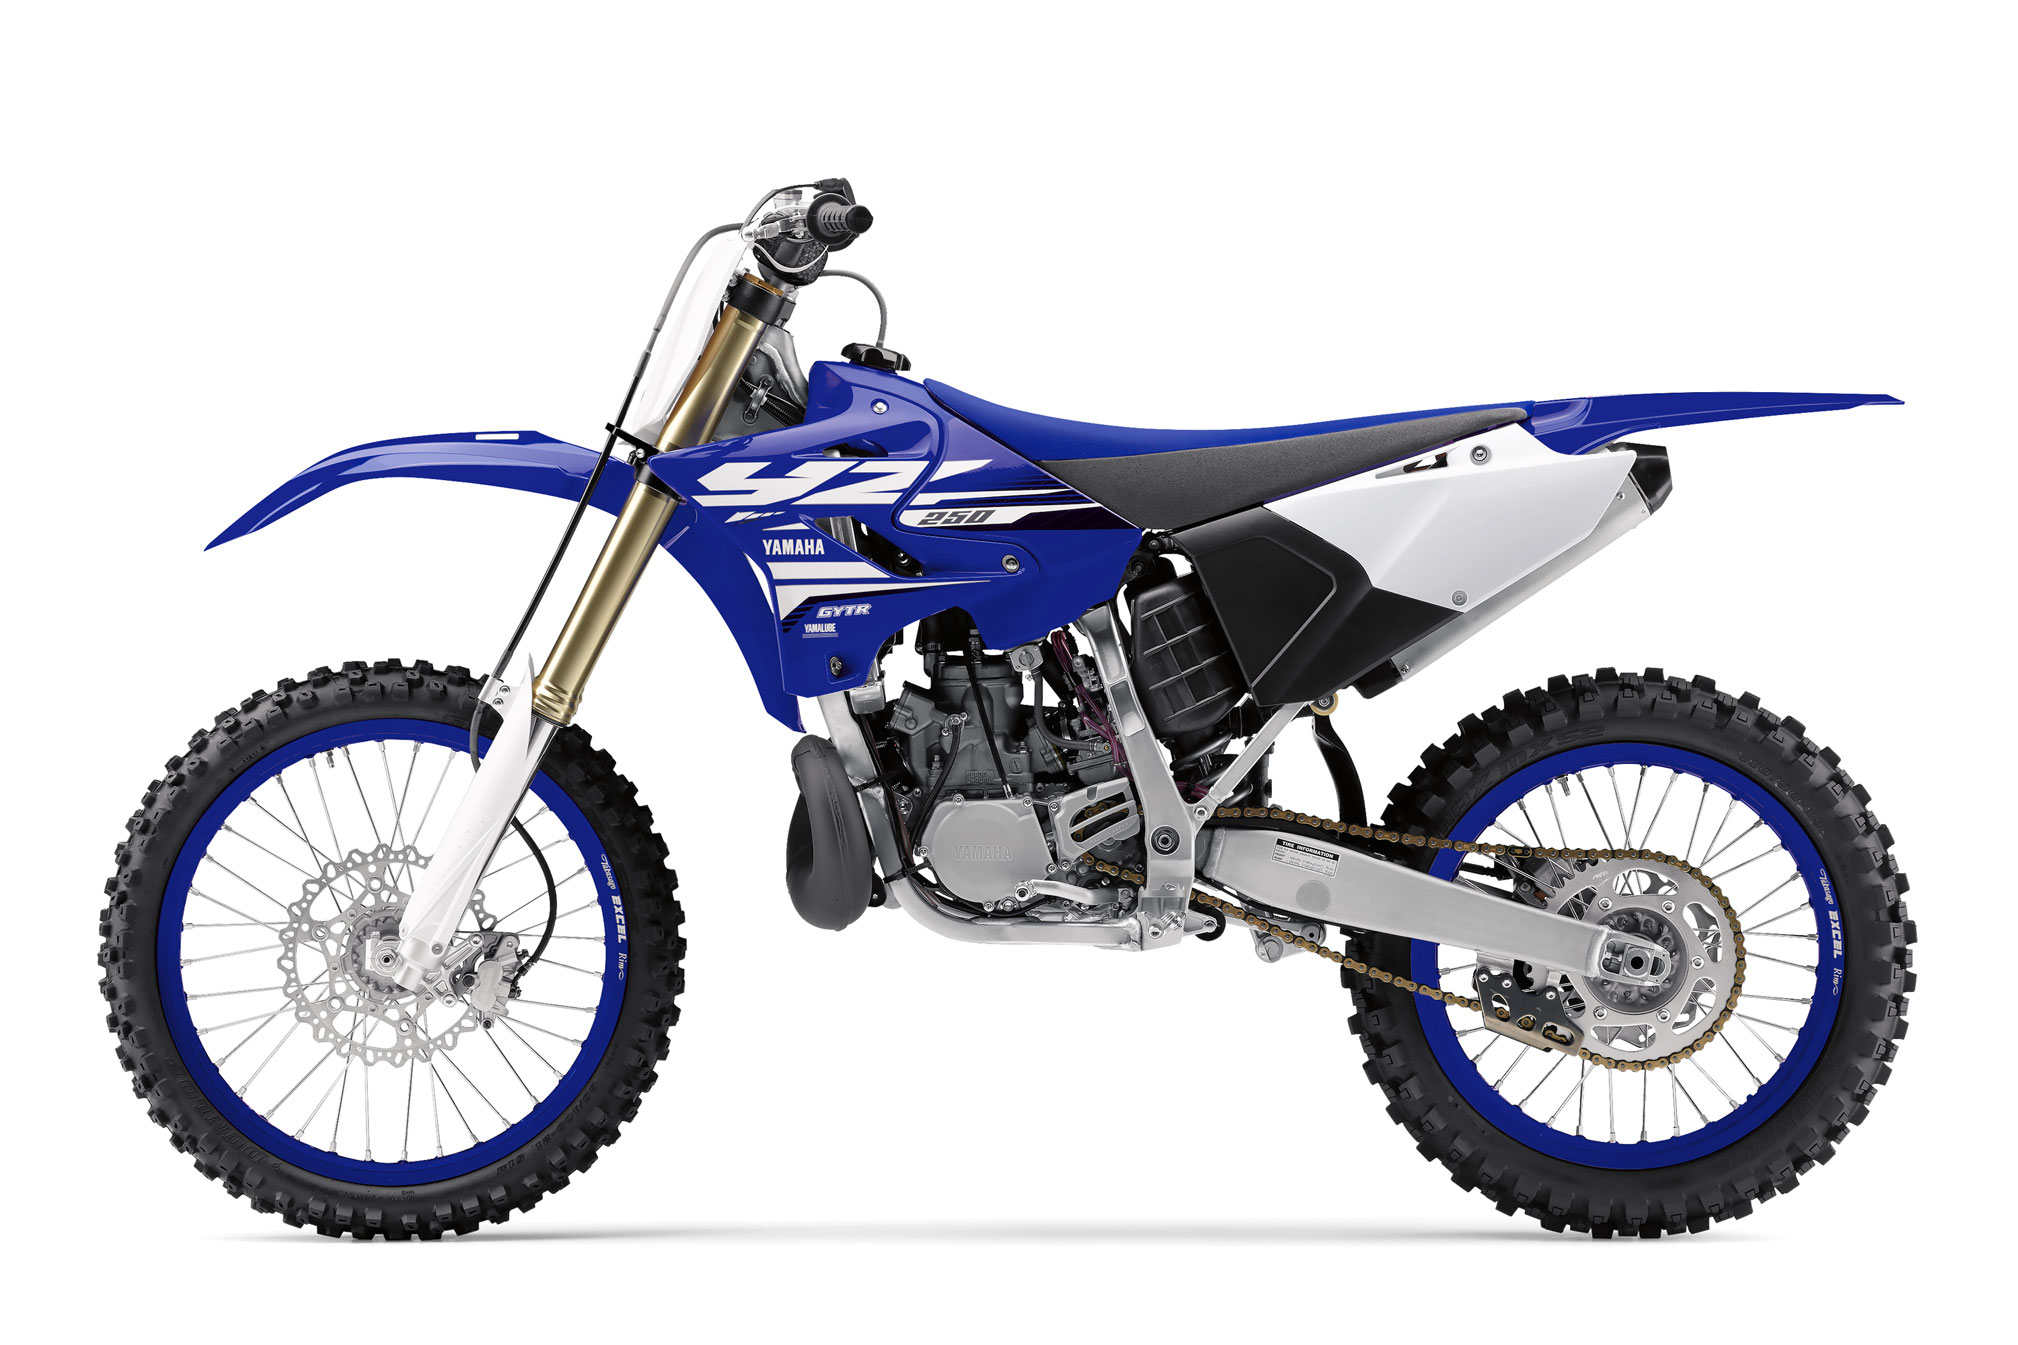 2018 yamaha yz250 review totalmotorcycle. Black Bedroom Furniture Sets. Home Design Ideas